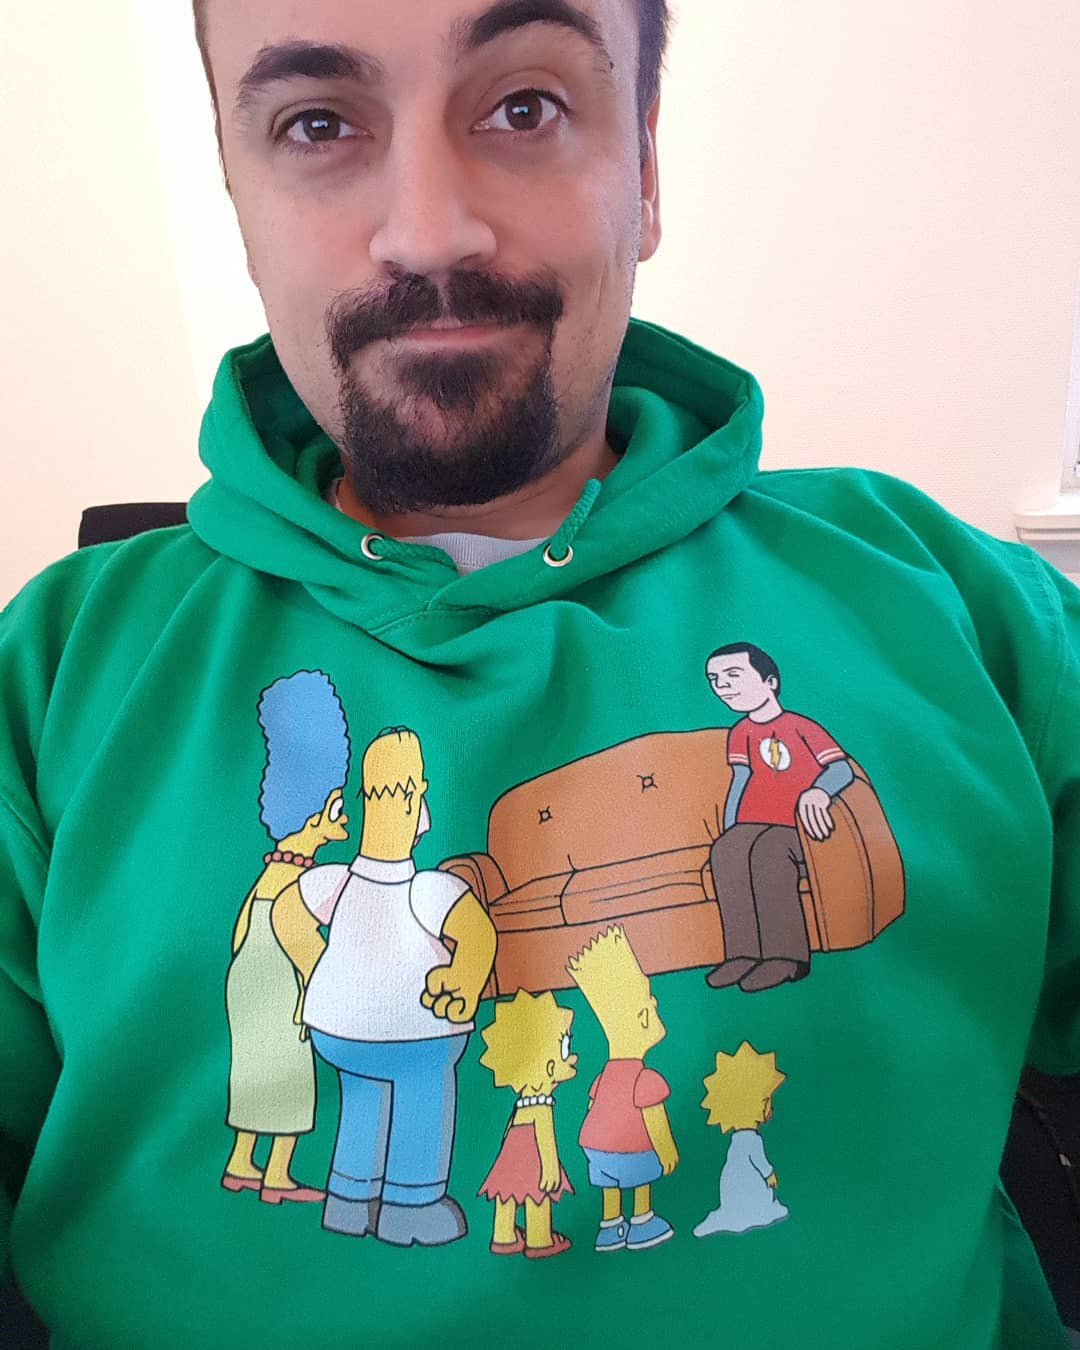 The Simpsons Family And Sheldon Cooper Mashup Shirts photo review